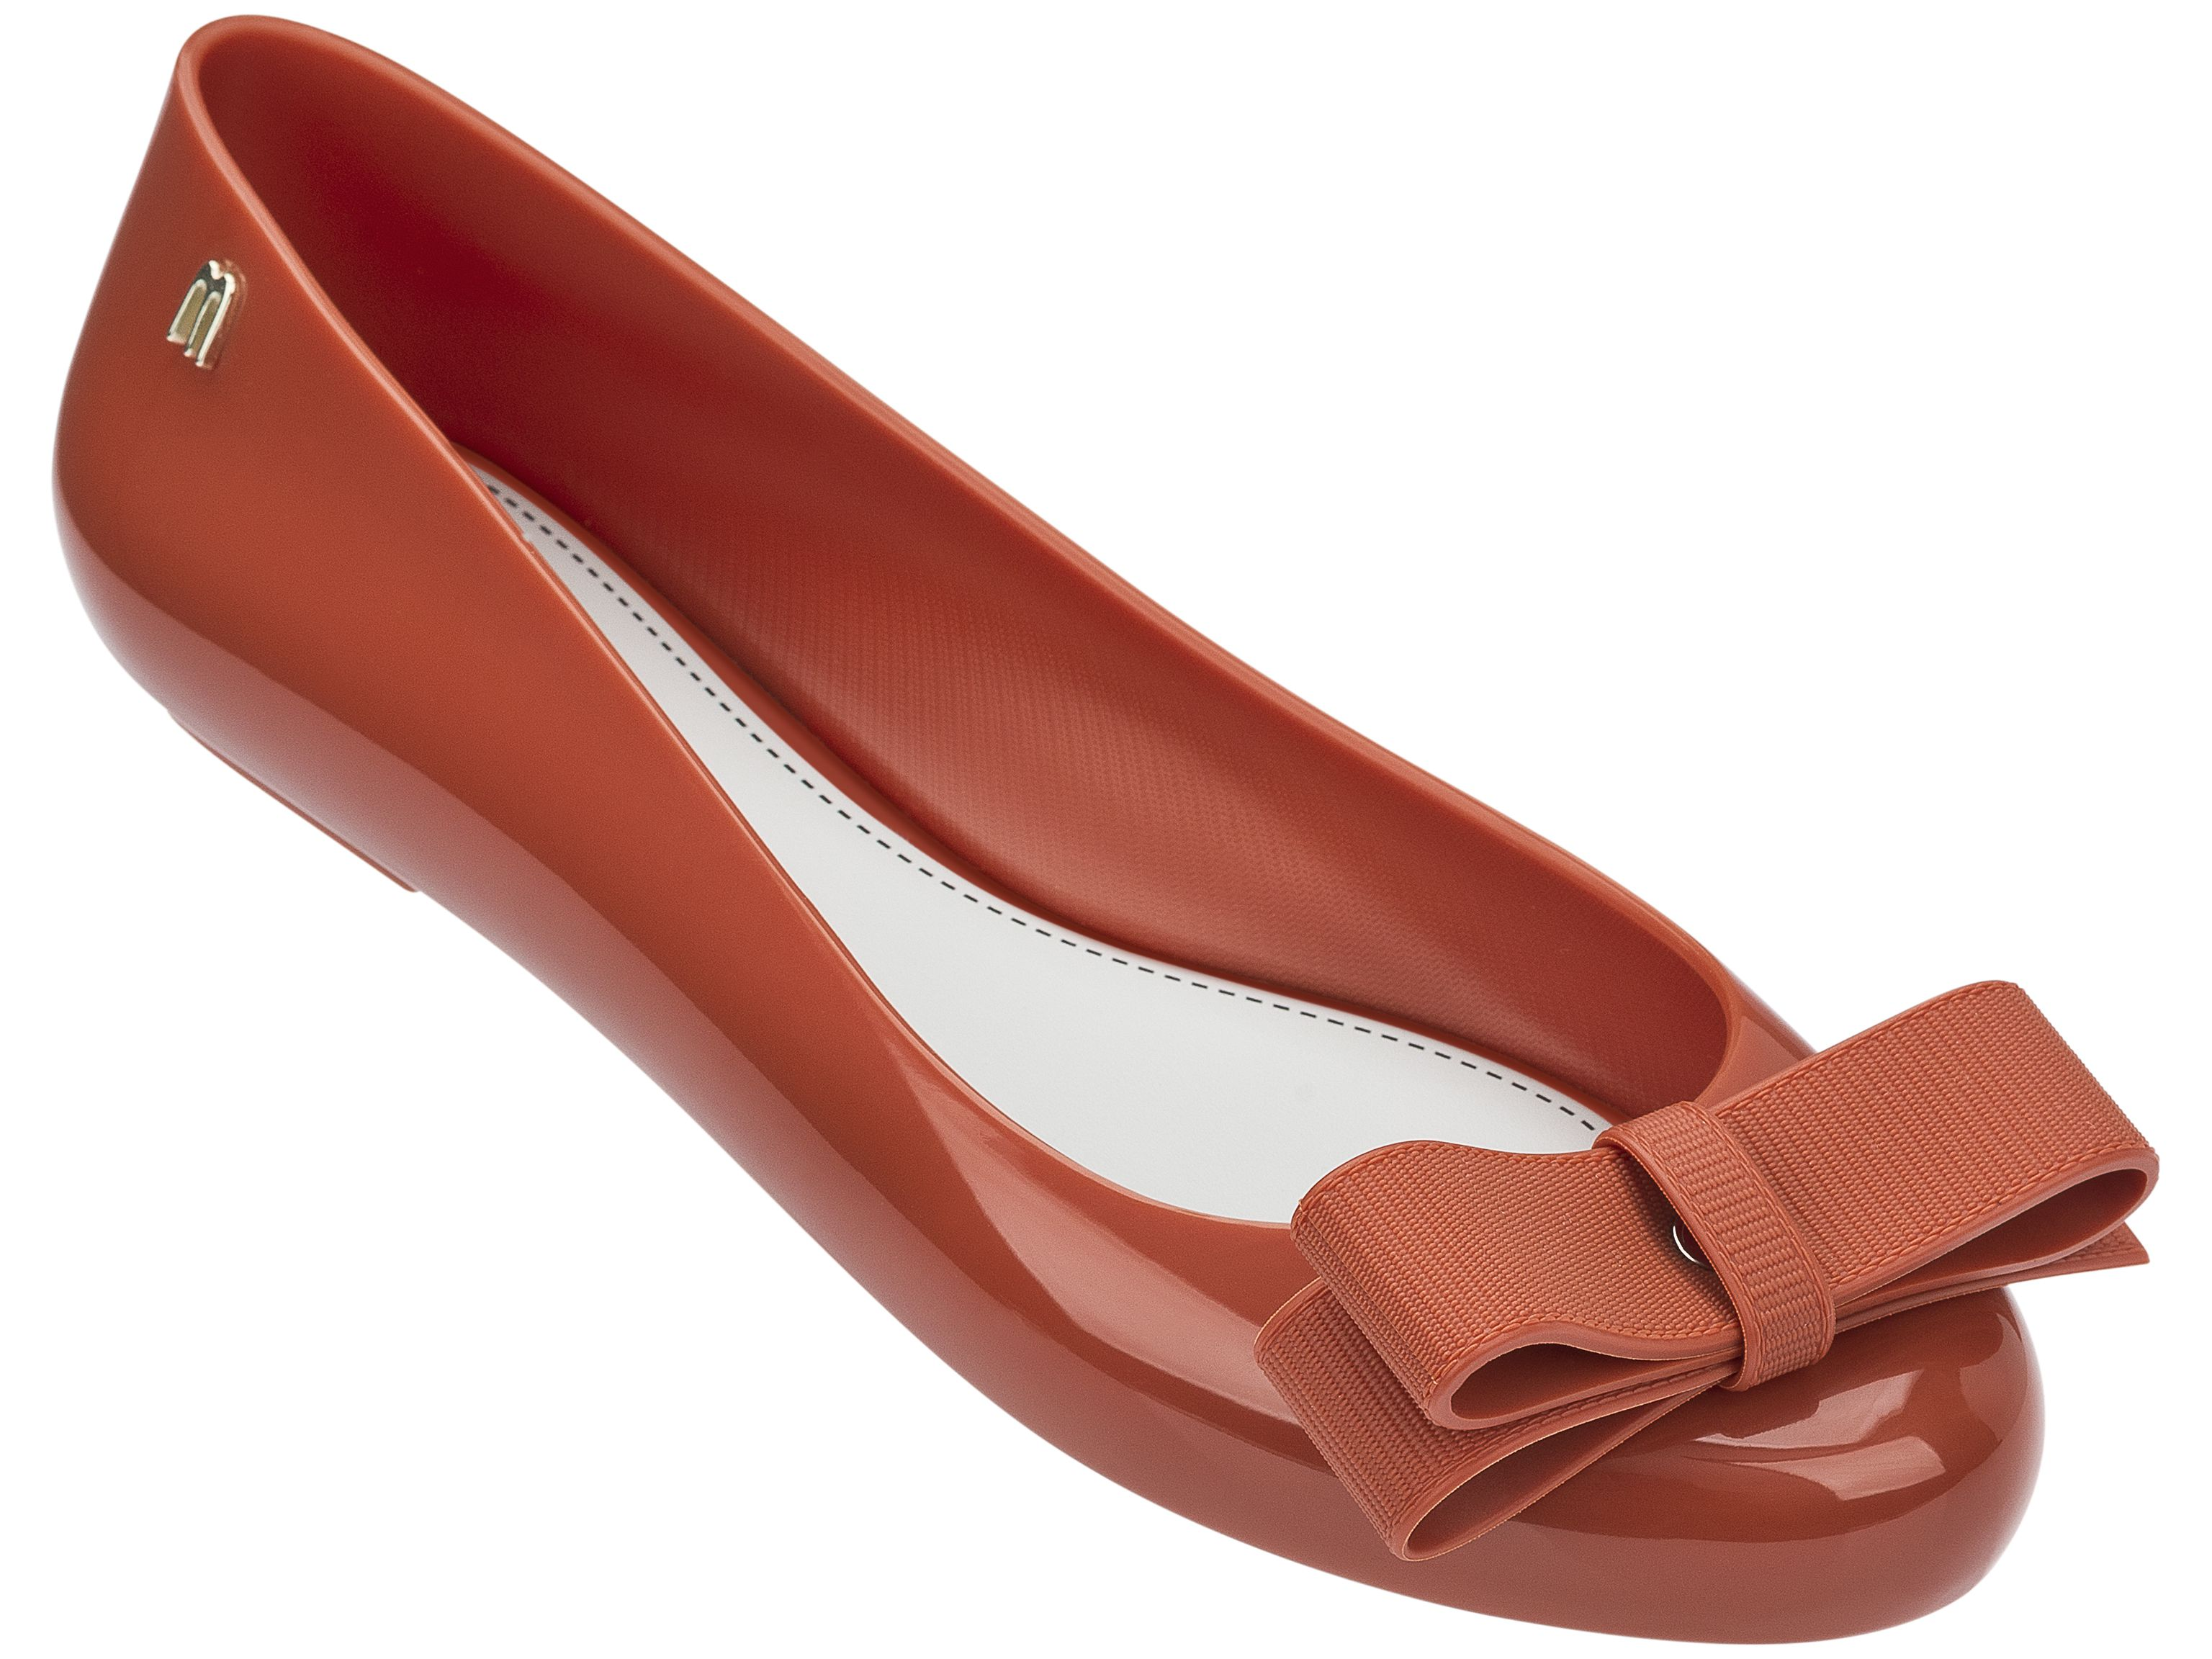 a5b267c3793b MELISSA SPACE LOVE + JASON WU III AD of in Melissa South Africa